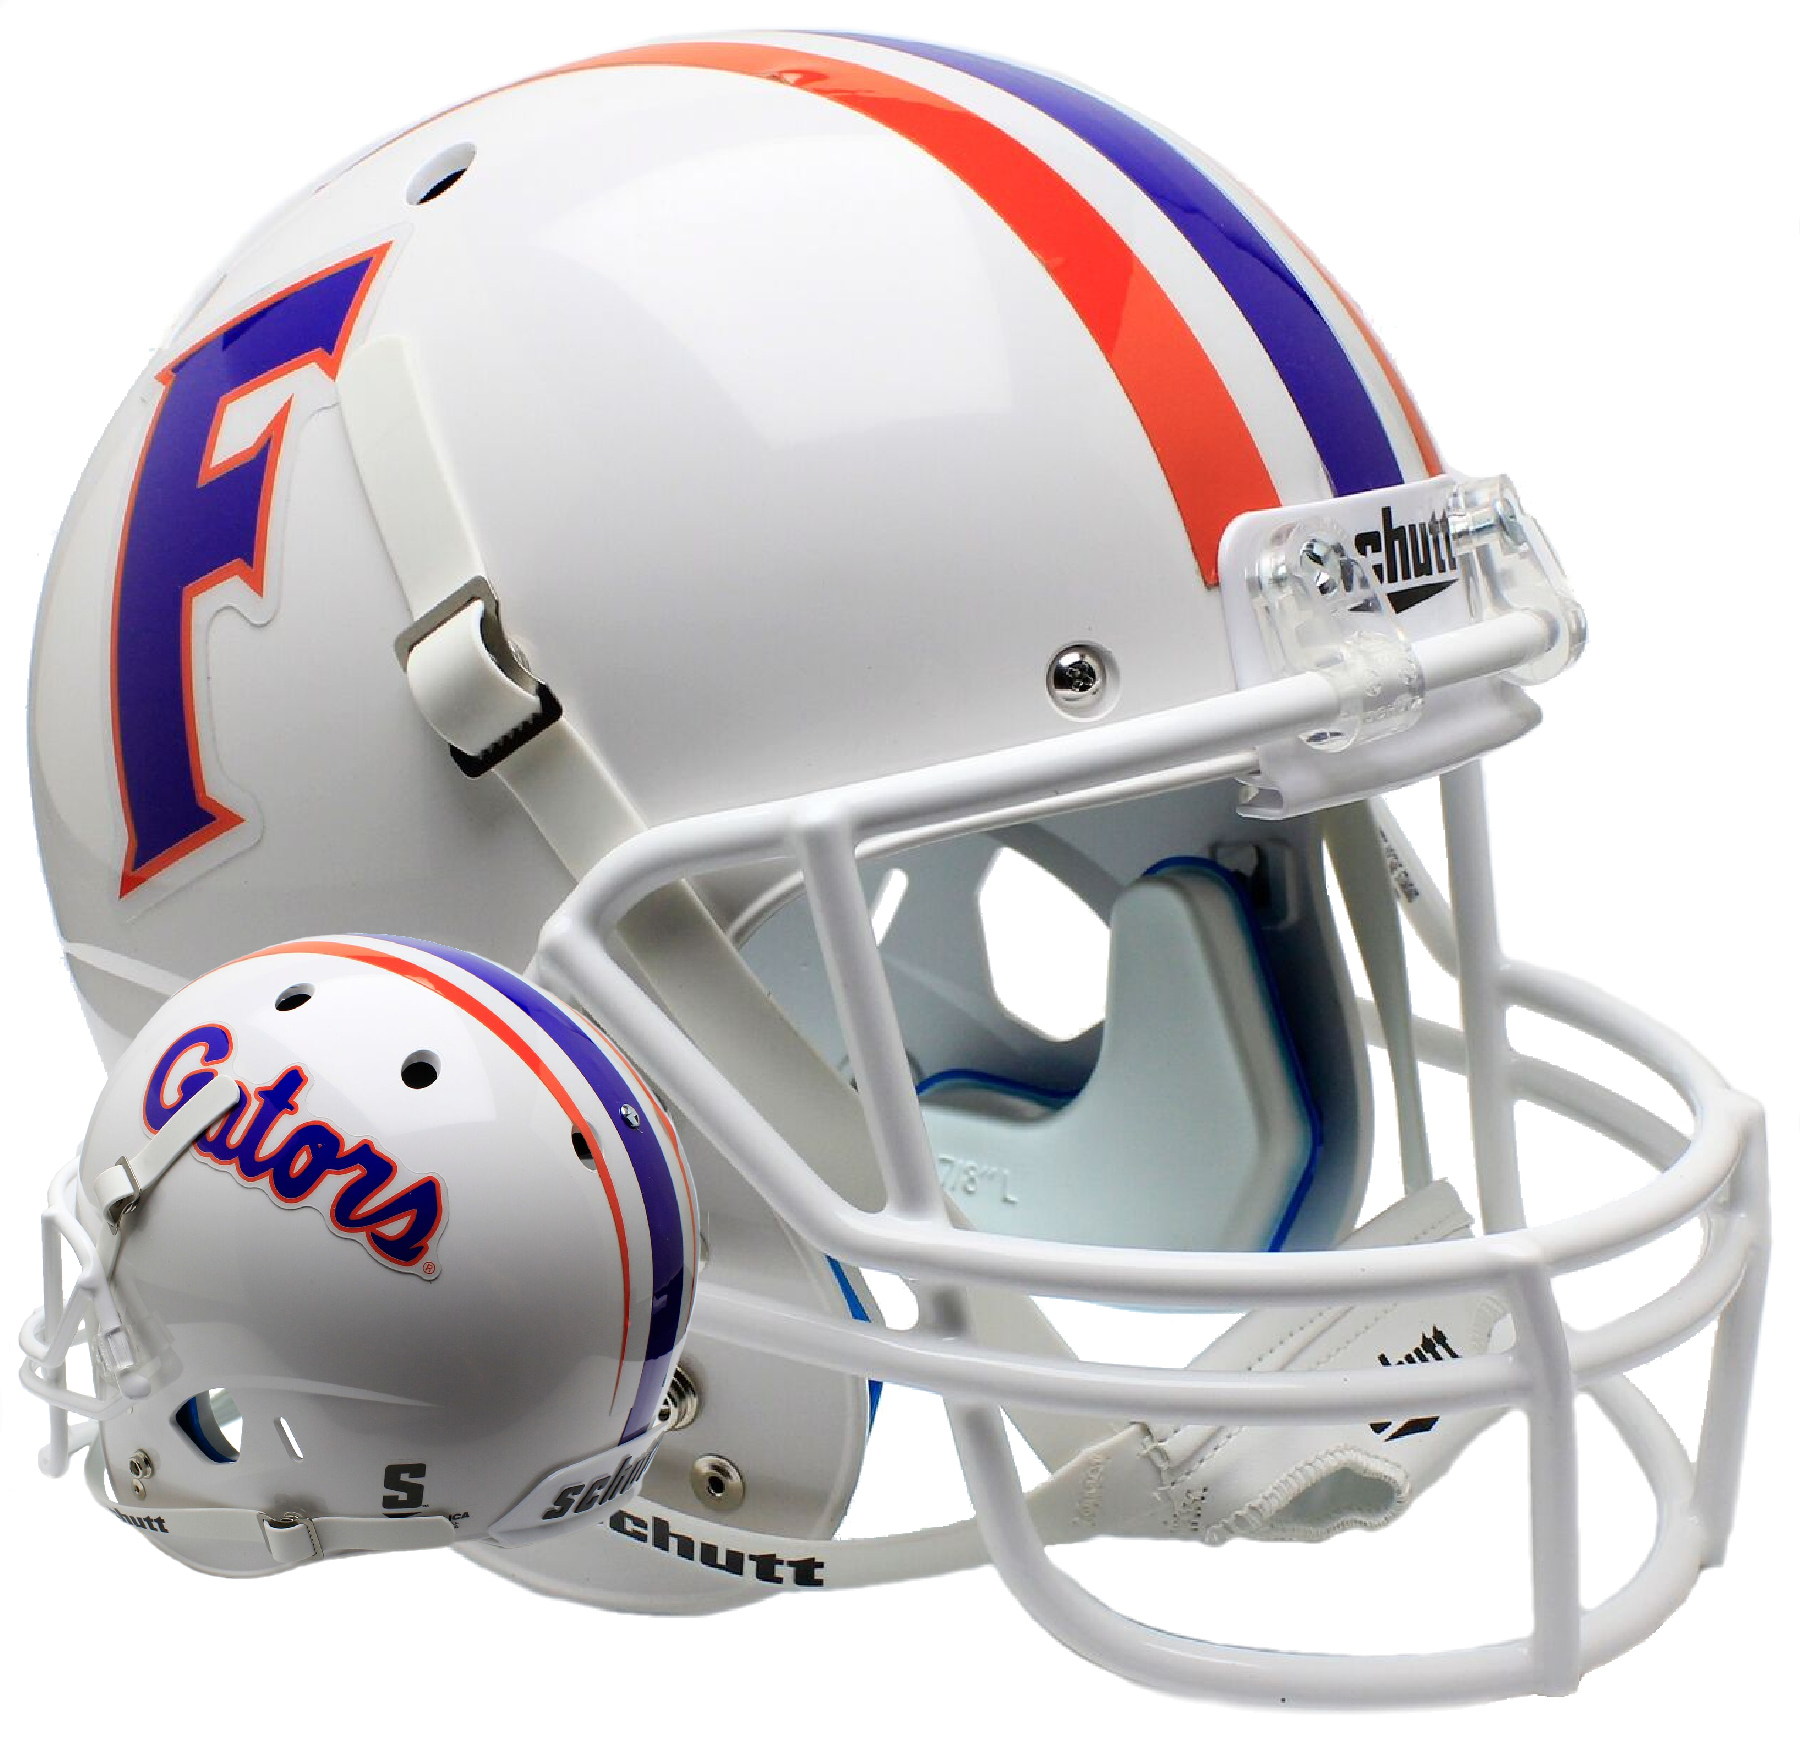 Florida Gators Authentic College XP Football Helmet Schutt <B>White</B>